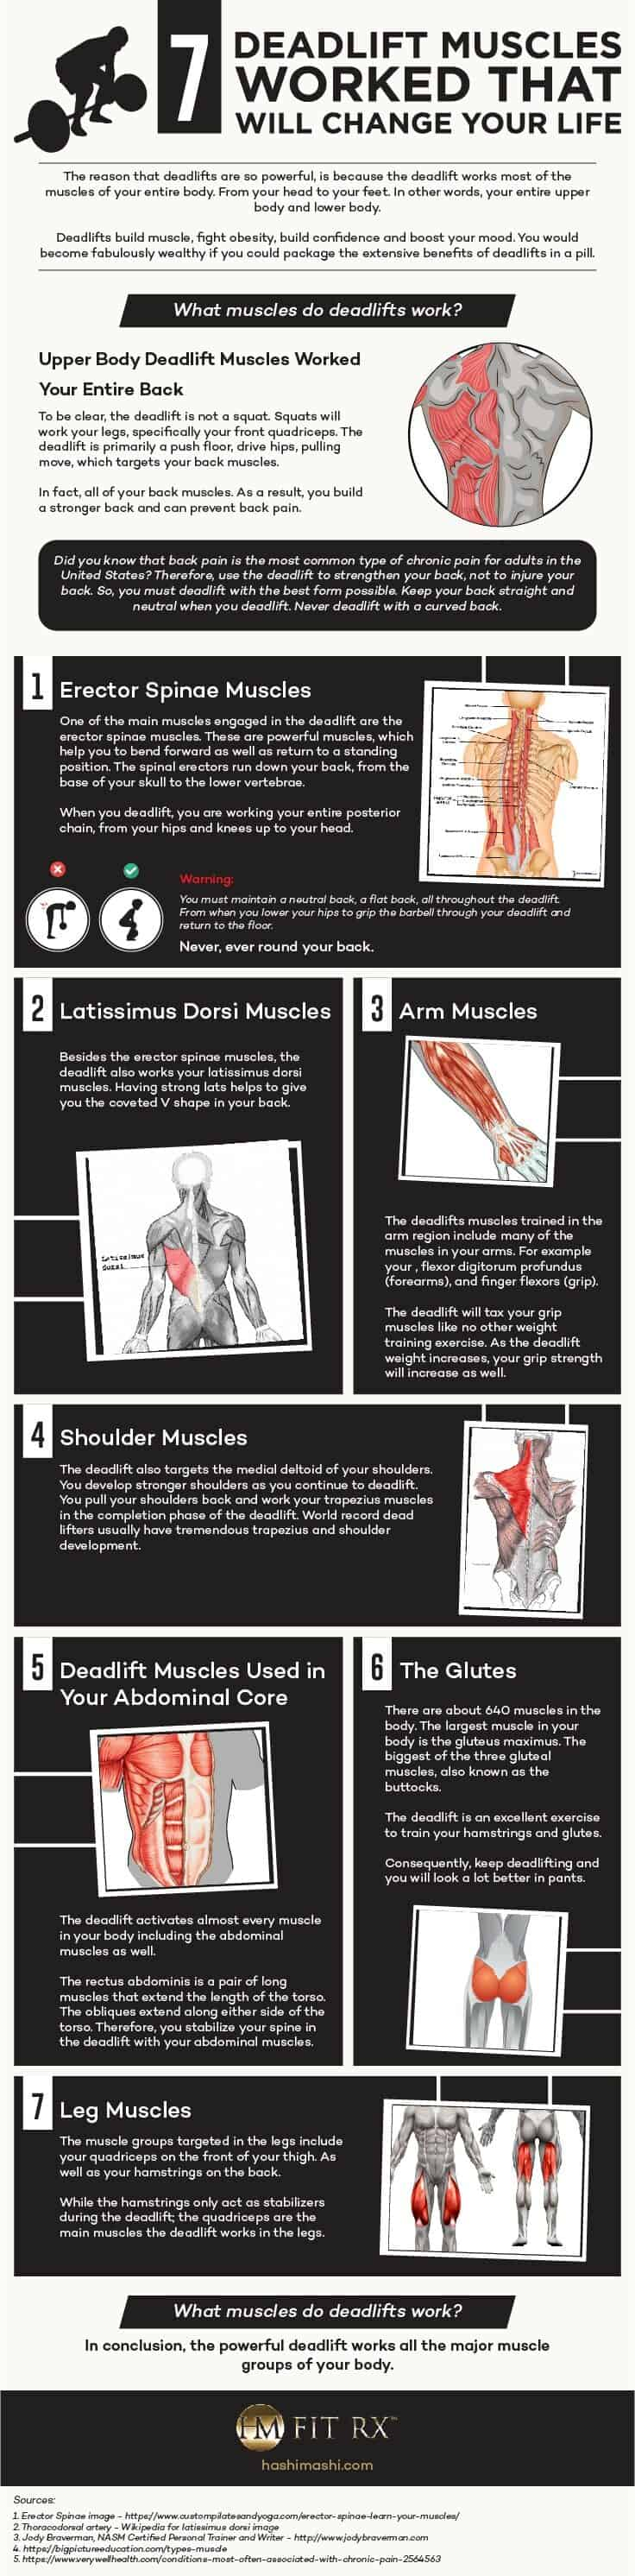 what muscle groups do deadlifts work infographic credit hashimashicom.bigscoots-staging.com